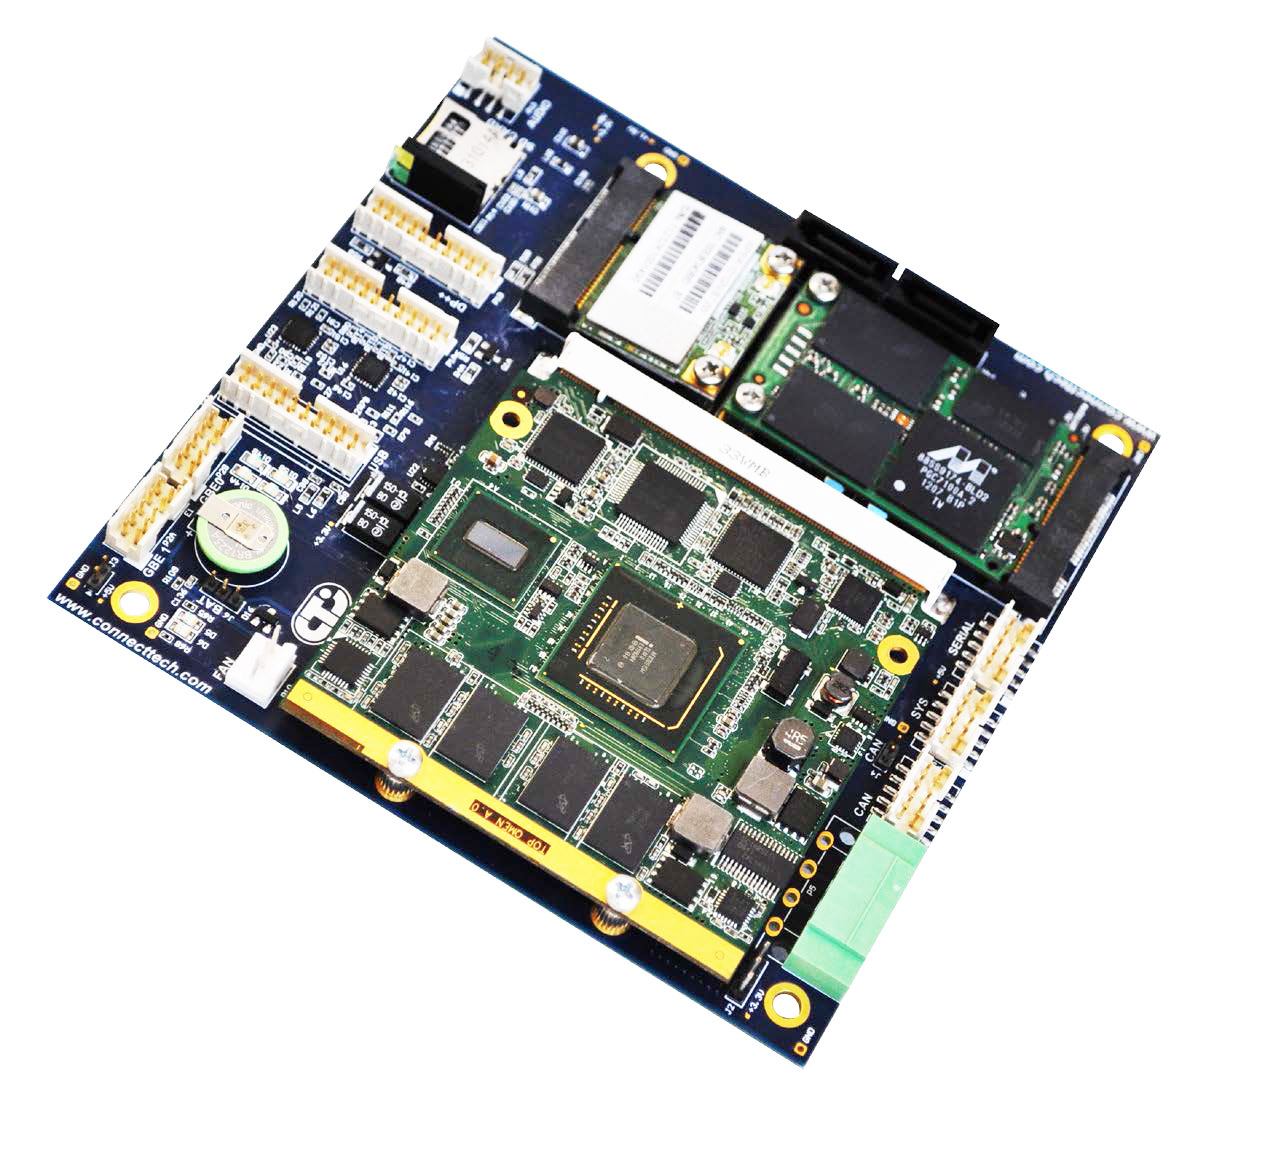 Qseven Gen 2.0 Carrier Board